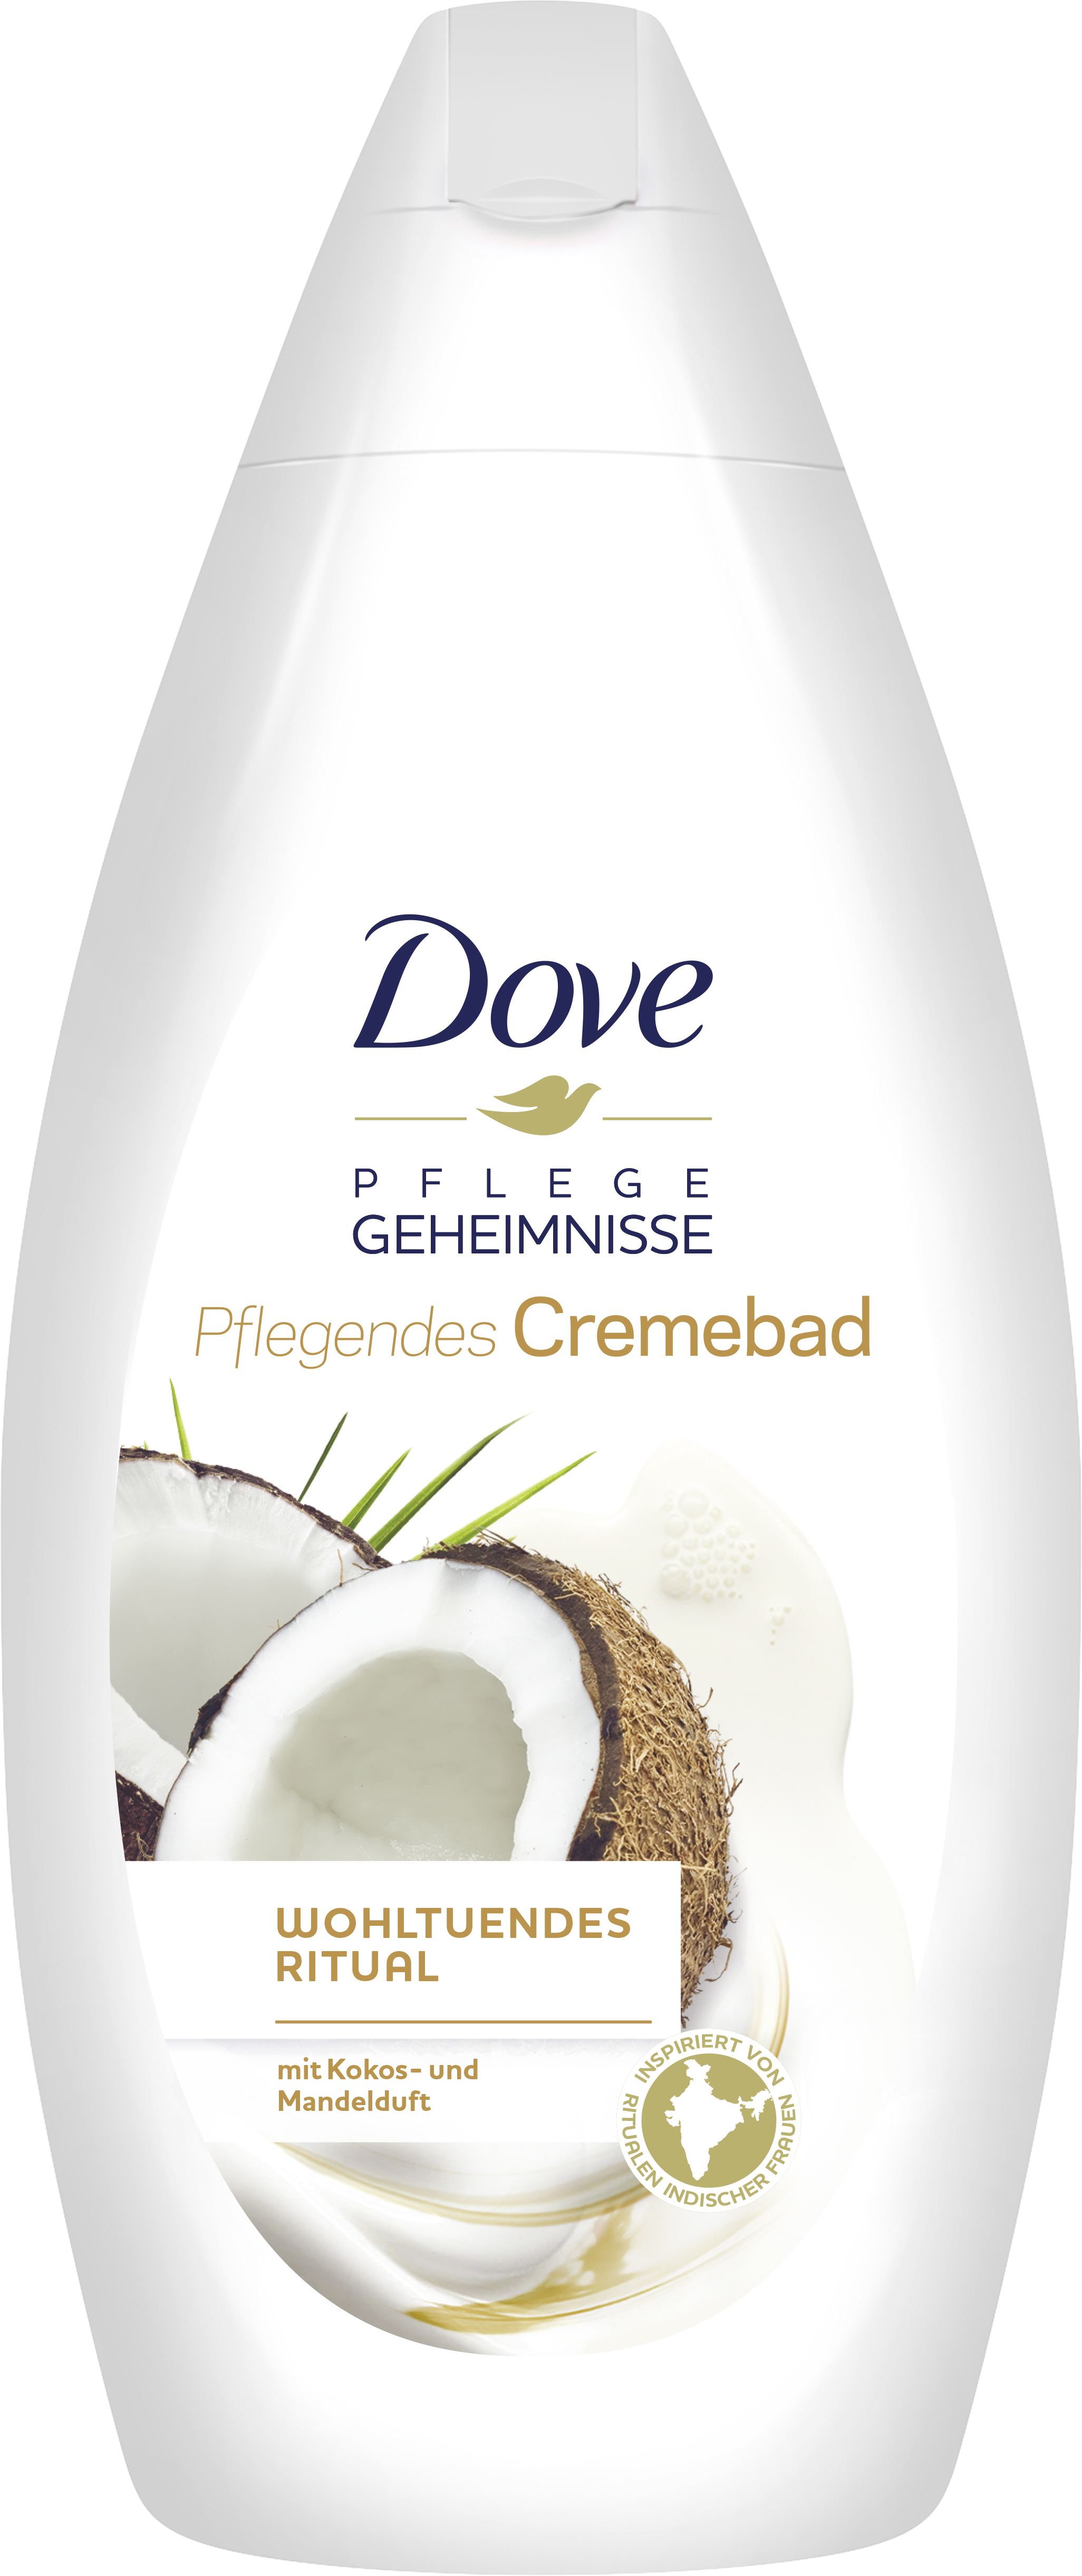 Dove Bad Kokos Mandel 12x500ml FL